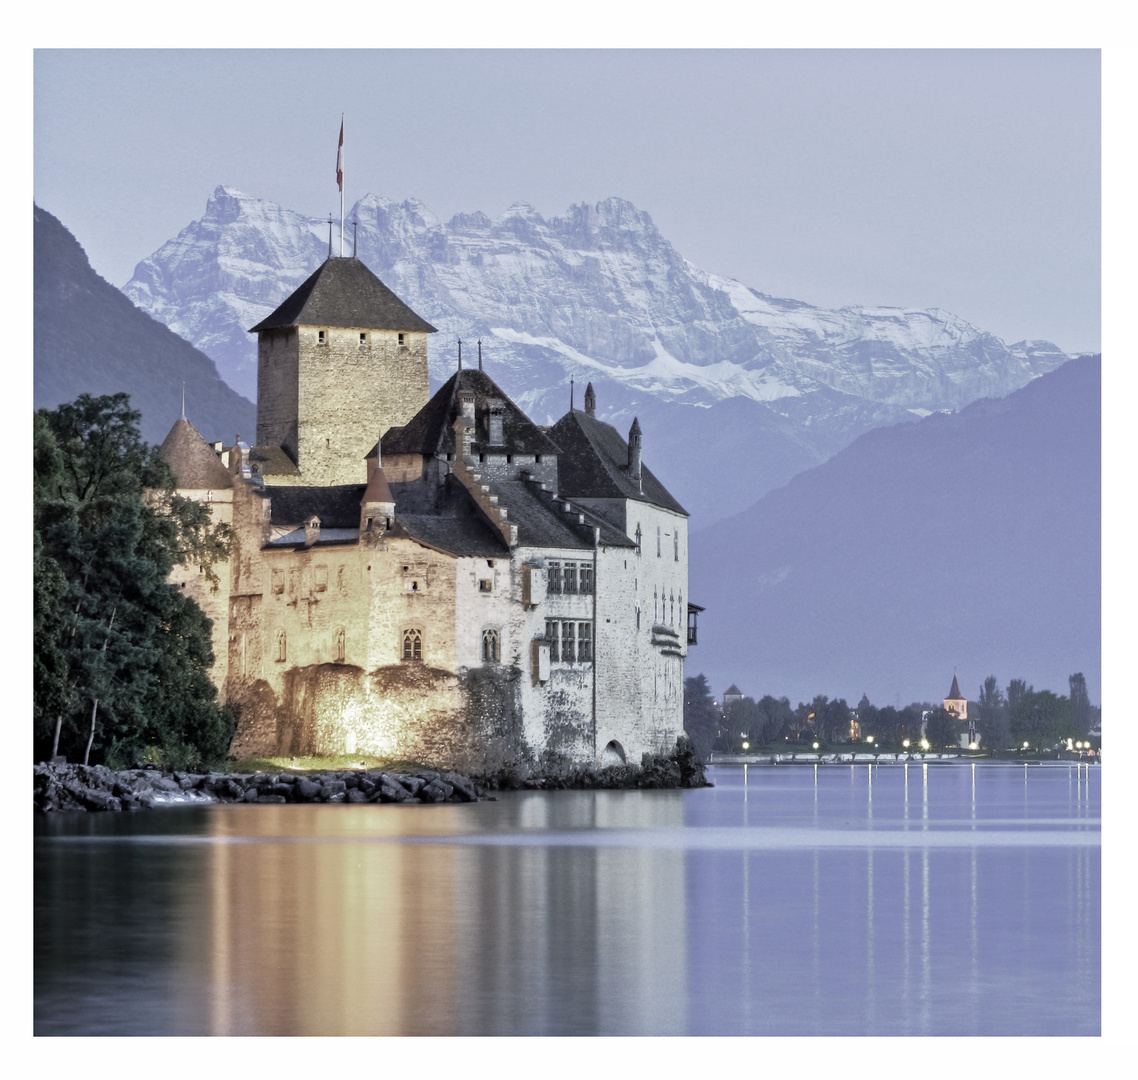 Montreaux, Genfer See